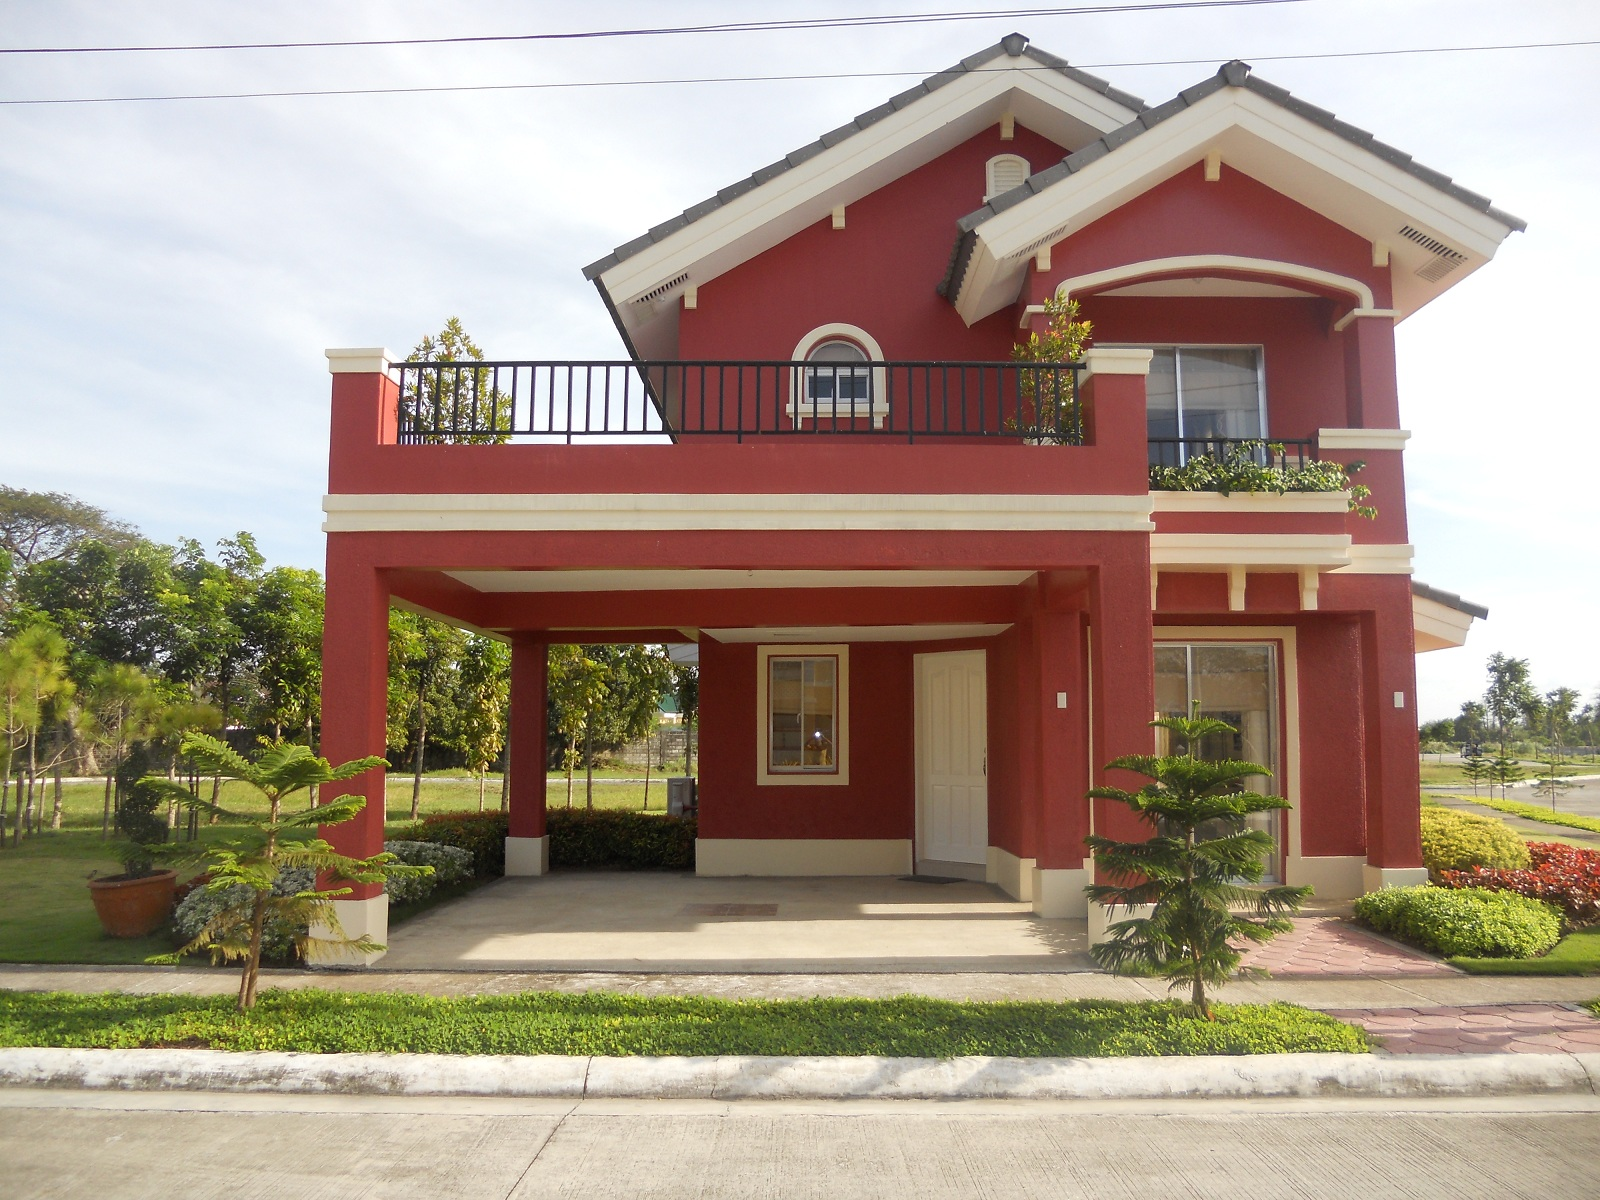 Althea or ruby model house of savannah glades iloilo by for Model house design